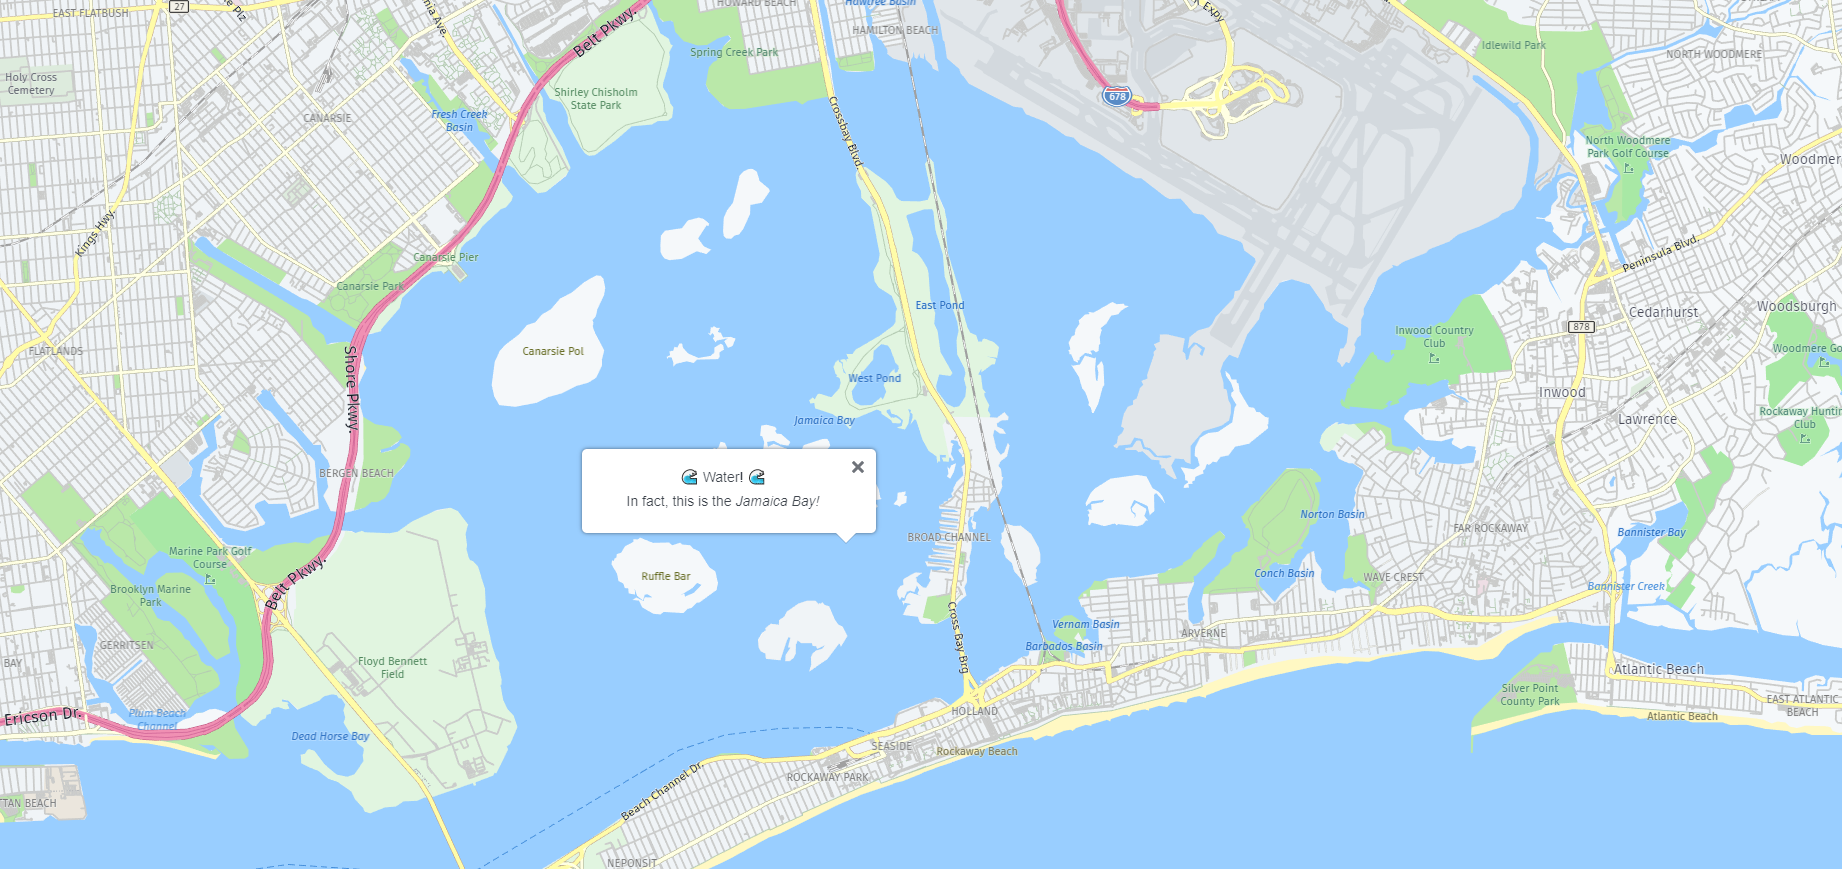 How to Find Out Whether a Location is on Land or Water